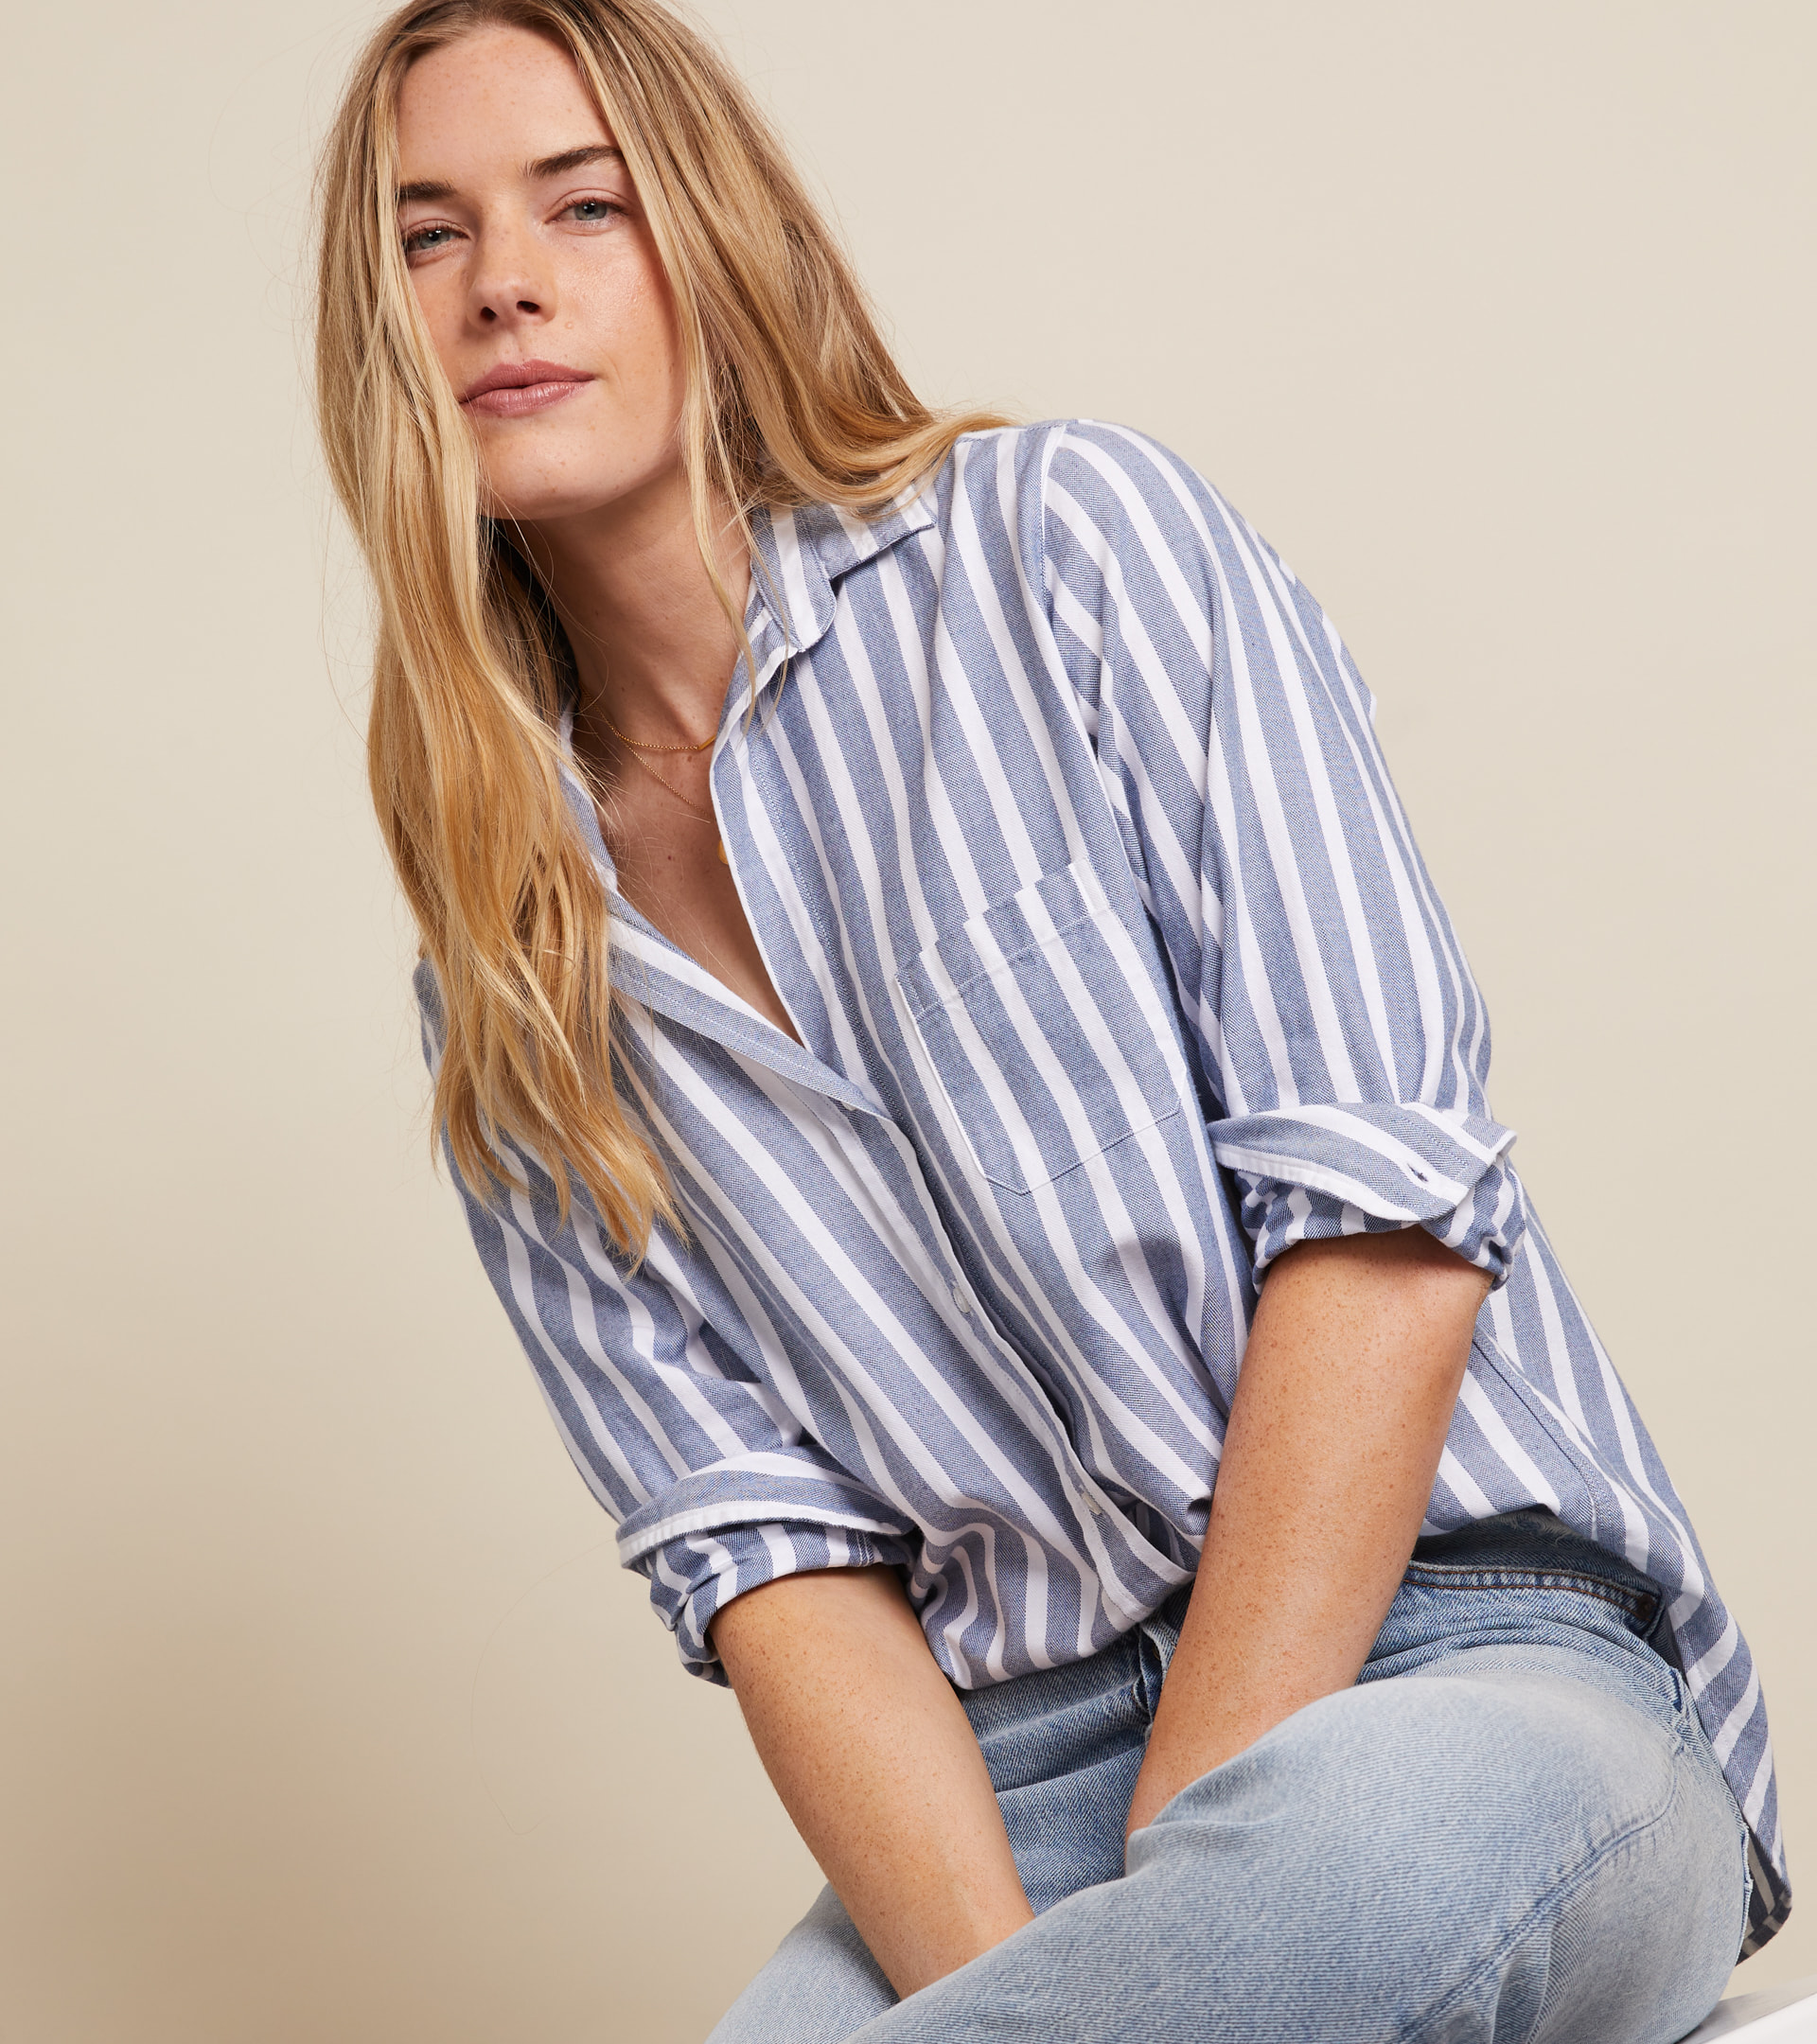 The Hero Button-Up Shirt Blue Melange Stripes, Feathered Flannel view 2